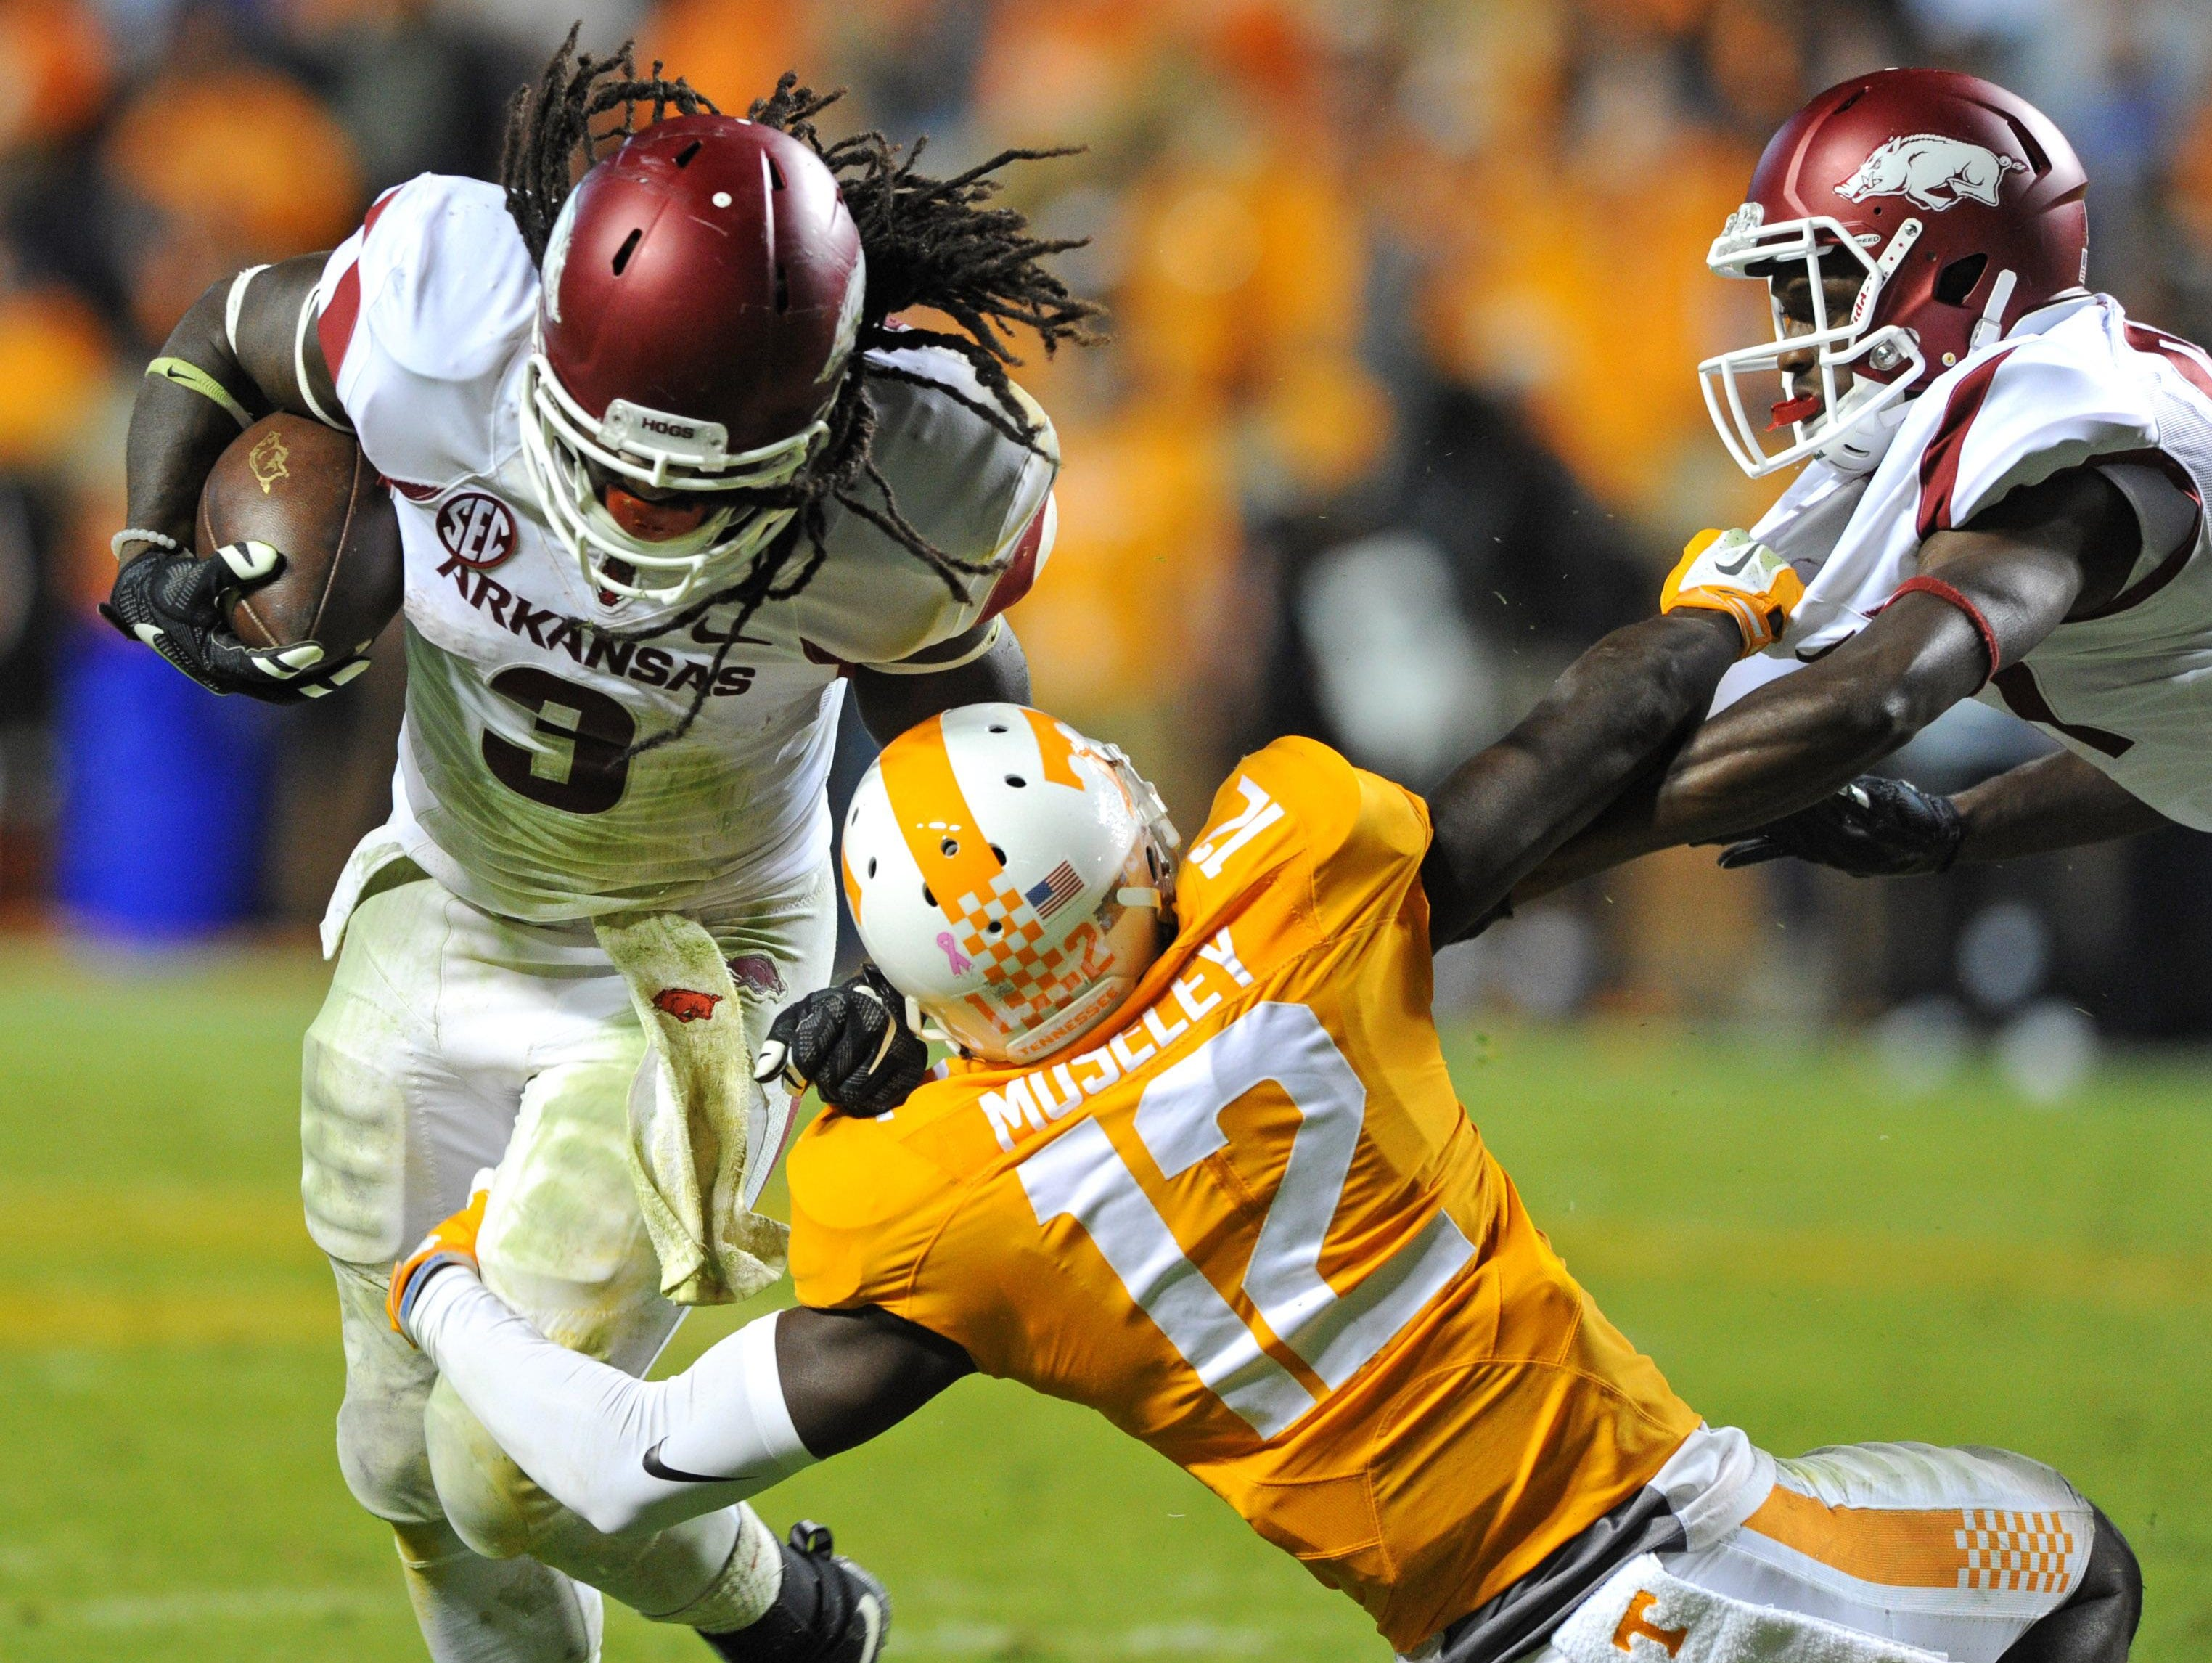 Arkansas running back Alex Collins (3) gets by Tennessee defensive back Emmanuel Moseley (12) with help from Arkansas wide receiver Dominique Reed during the second half at Neyland Stadium in Knoxville, Tenn. on Saturday.